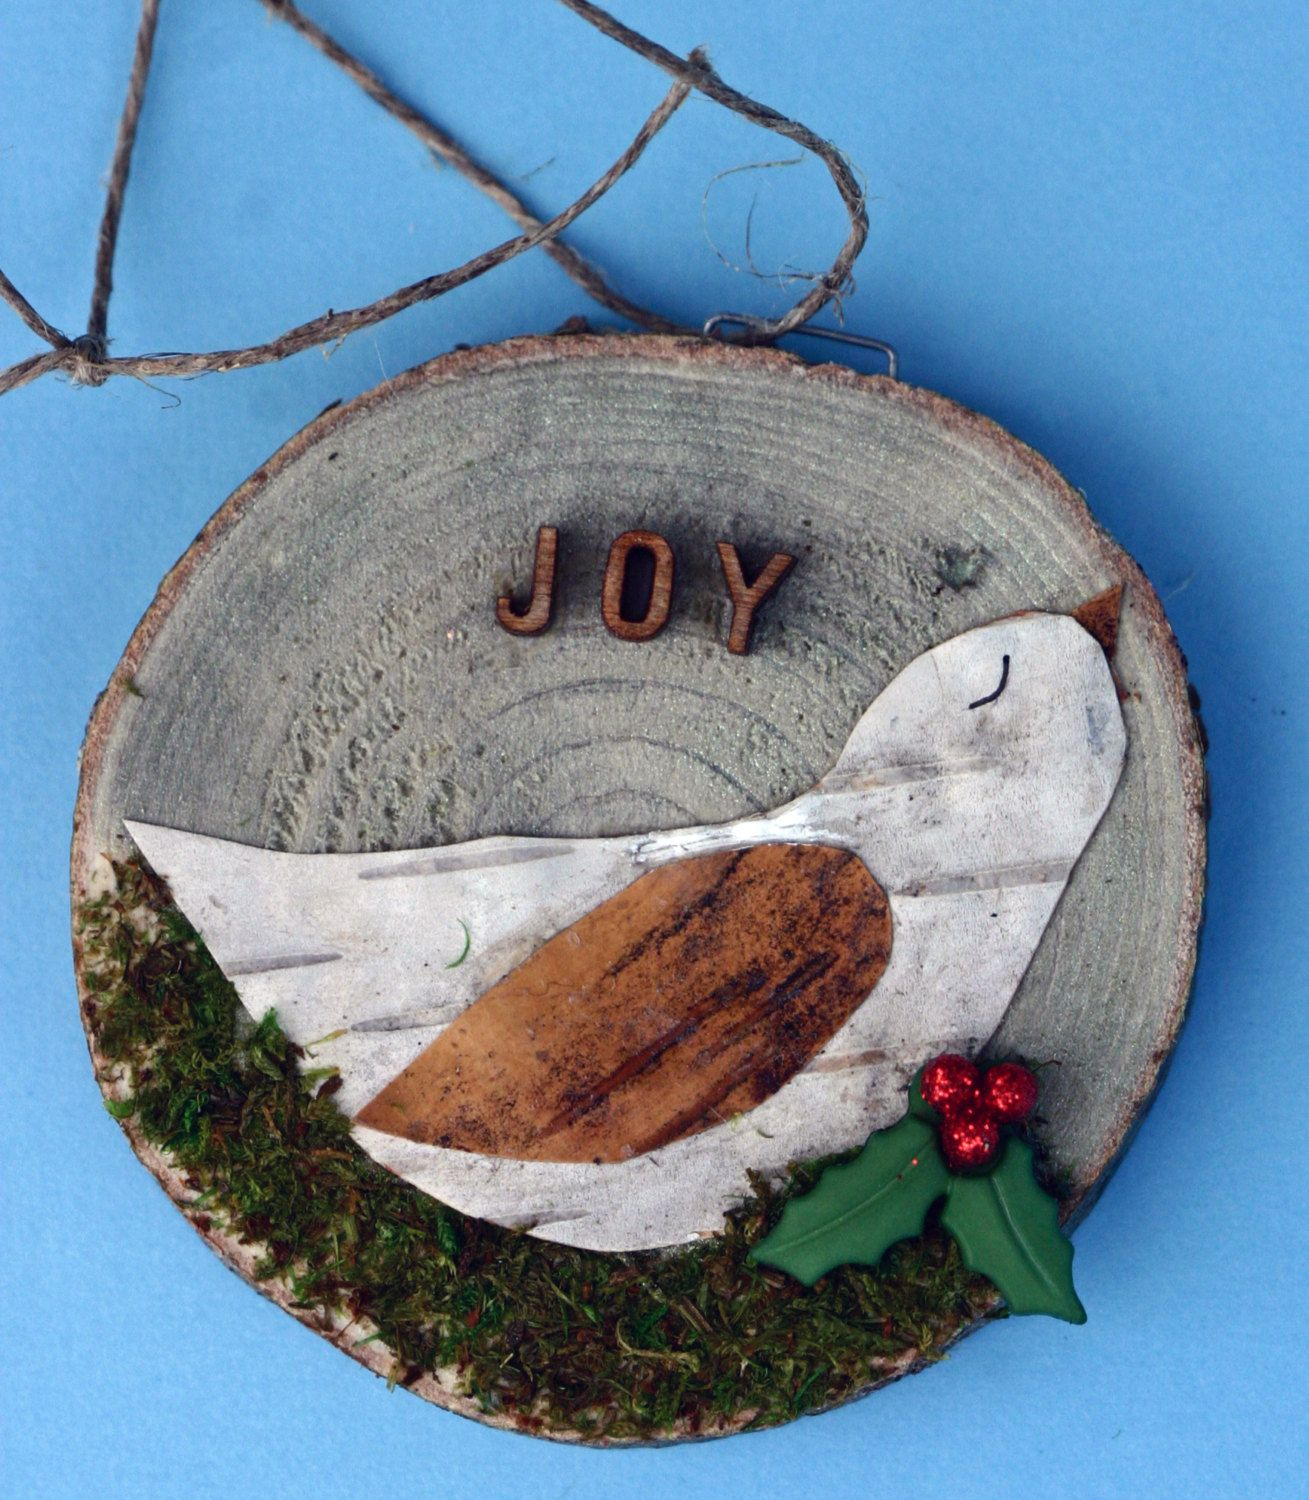 Joy Birch Tree Bark Bird On Wood Slice Christmas Ornament